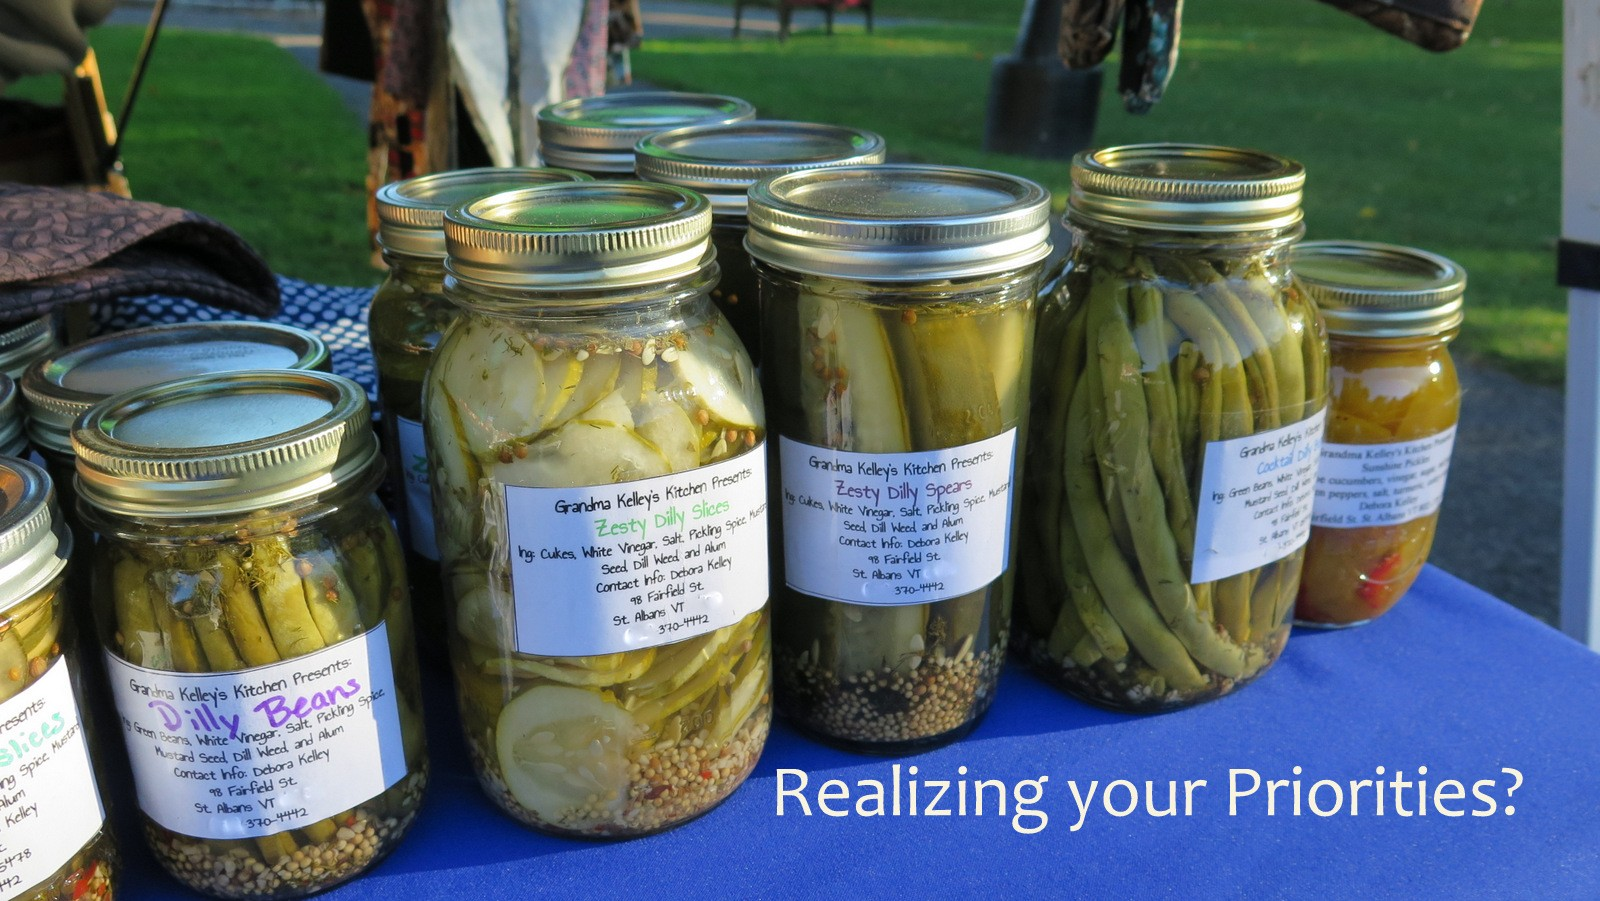 Image: Pickle jars for finding your priorities